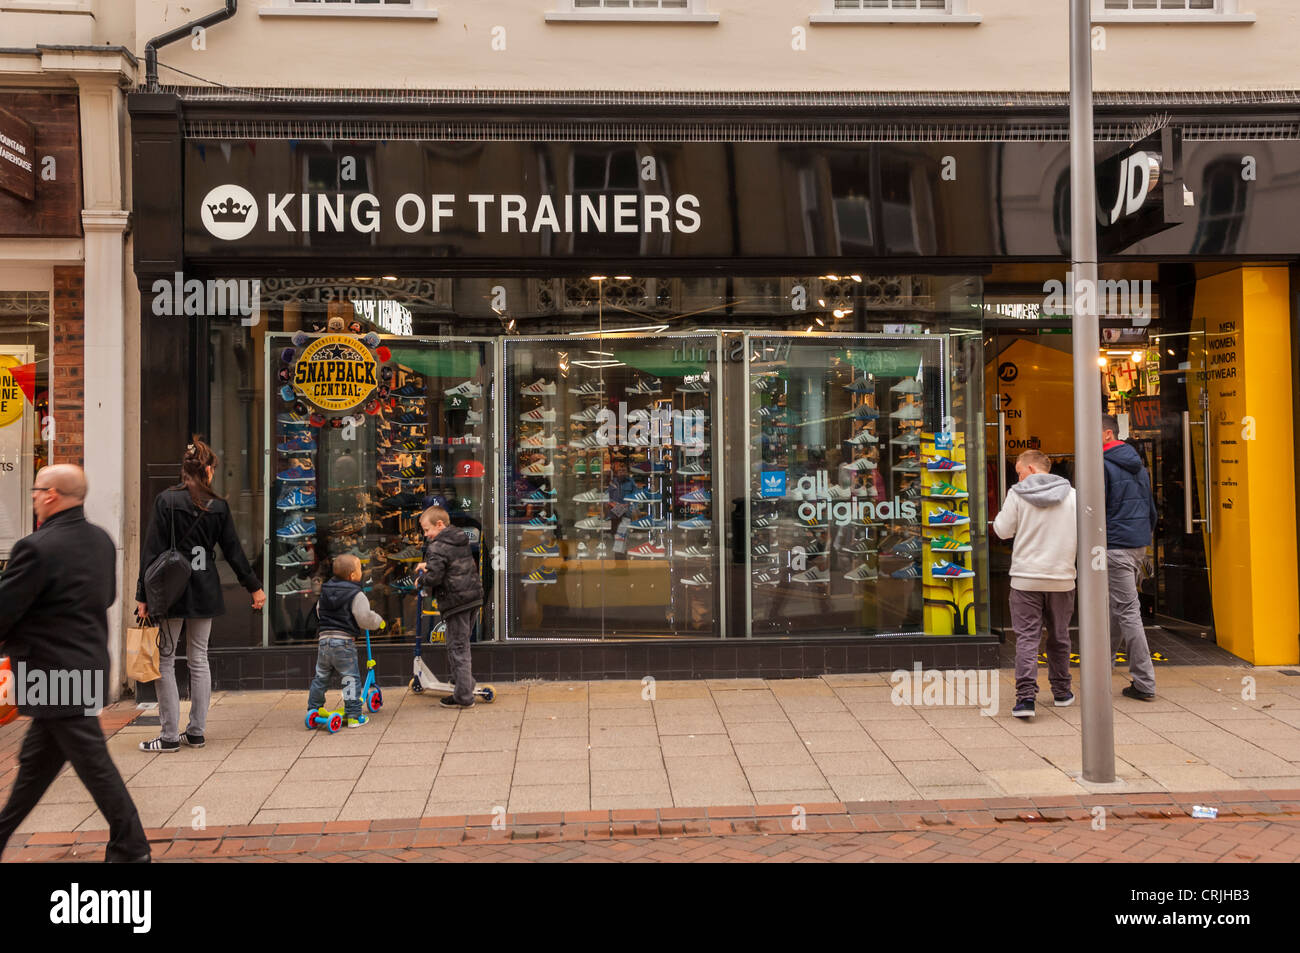 The King of Trainers training shoe shop